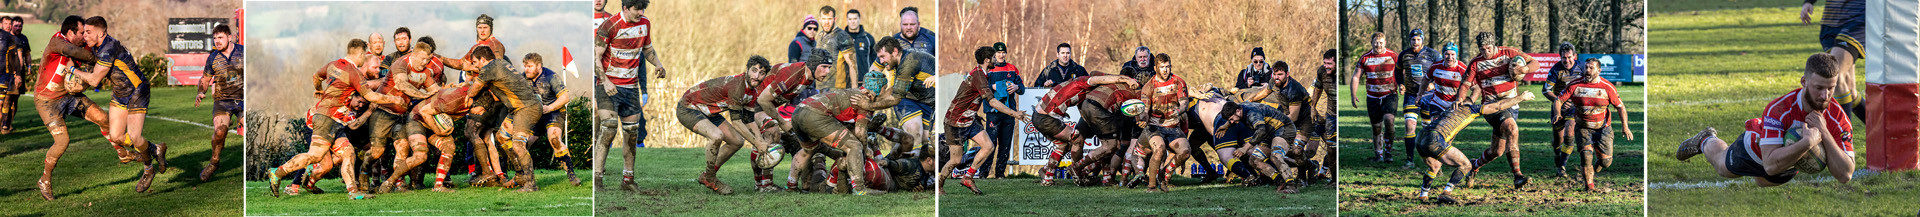 18 HOME RUGBY MATCH AT THE CROSS by Denys Clarke